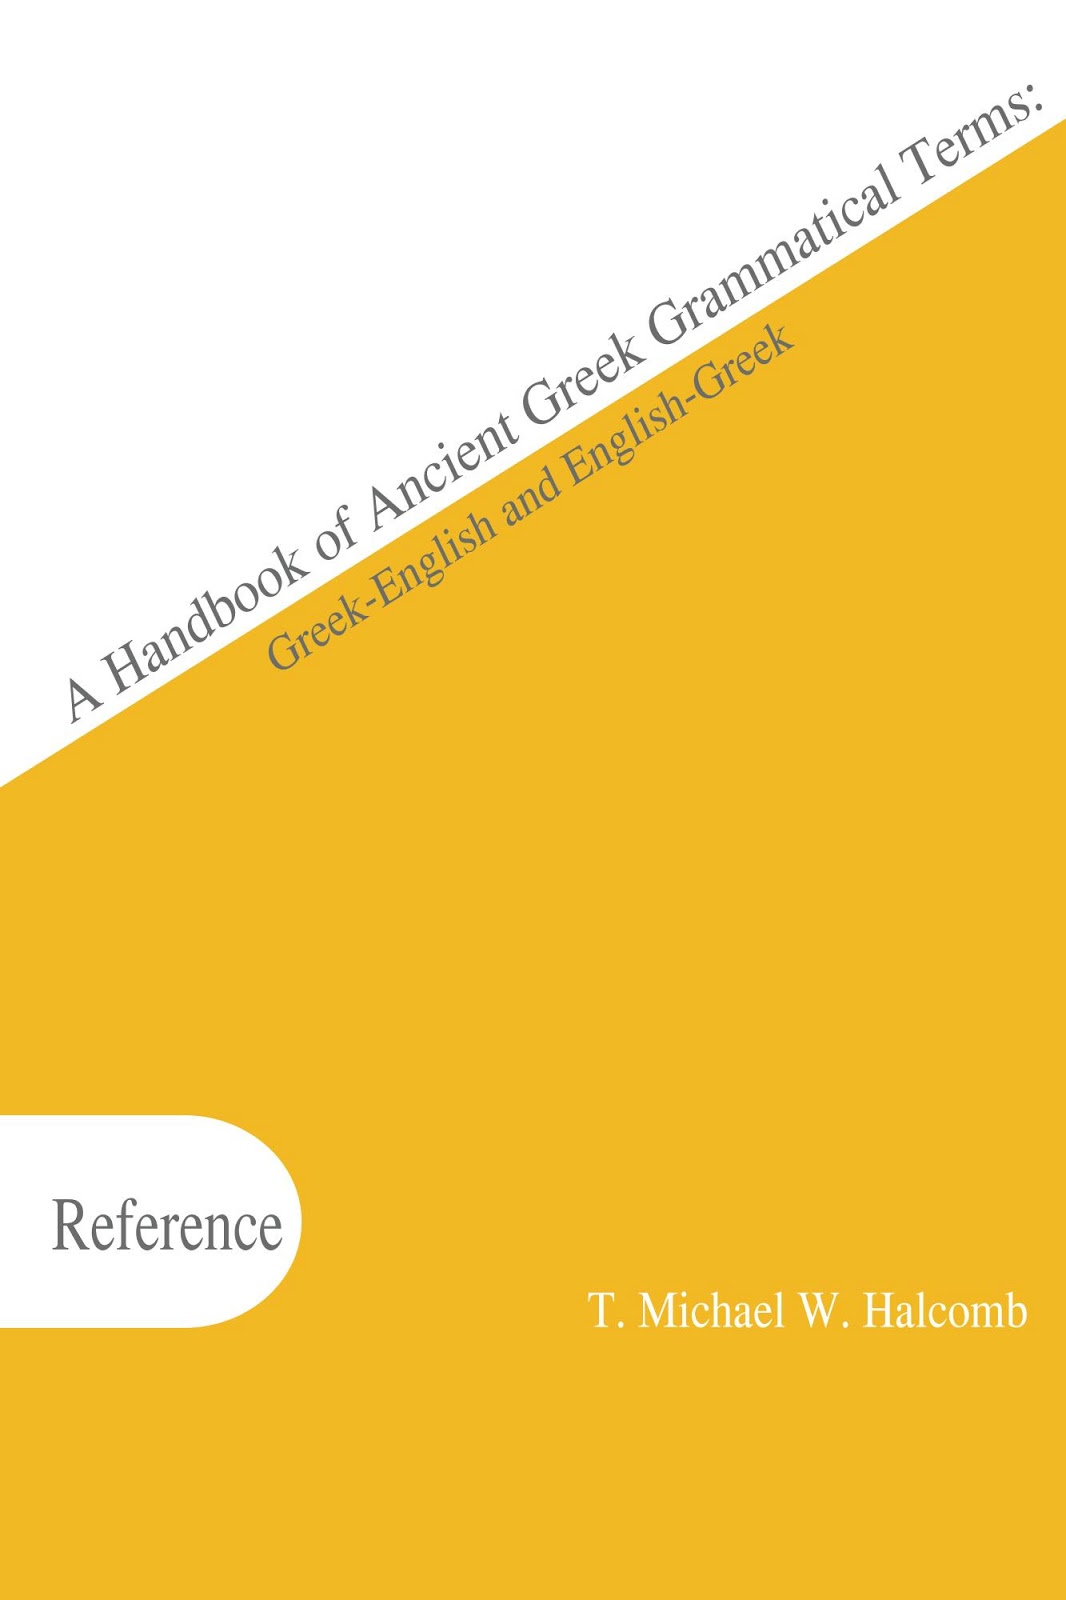 Online Greek Classes - Ancient Greek Grammar Terms